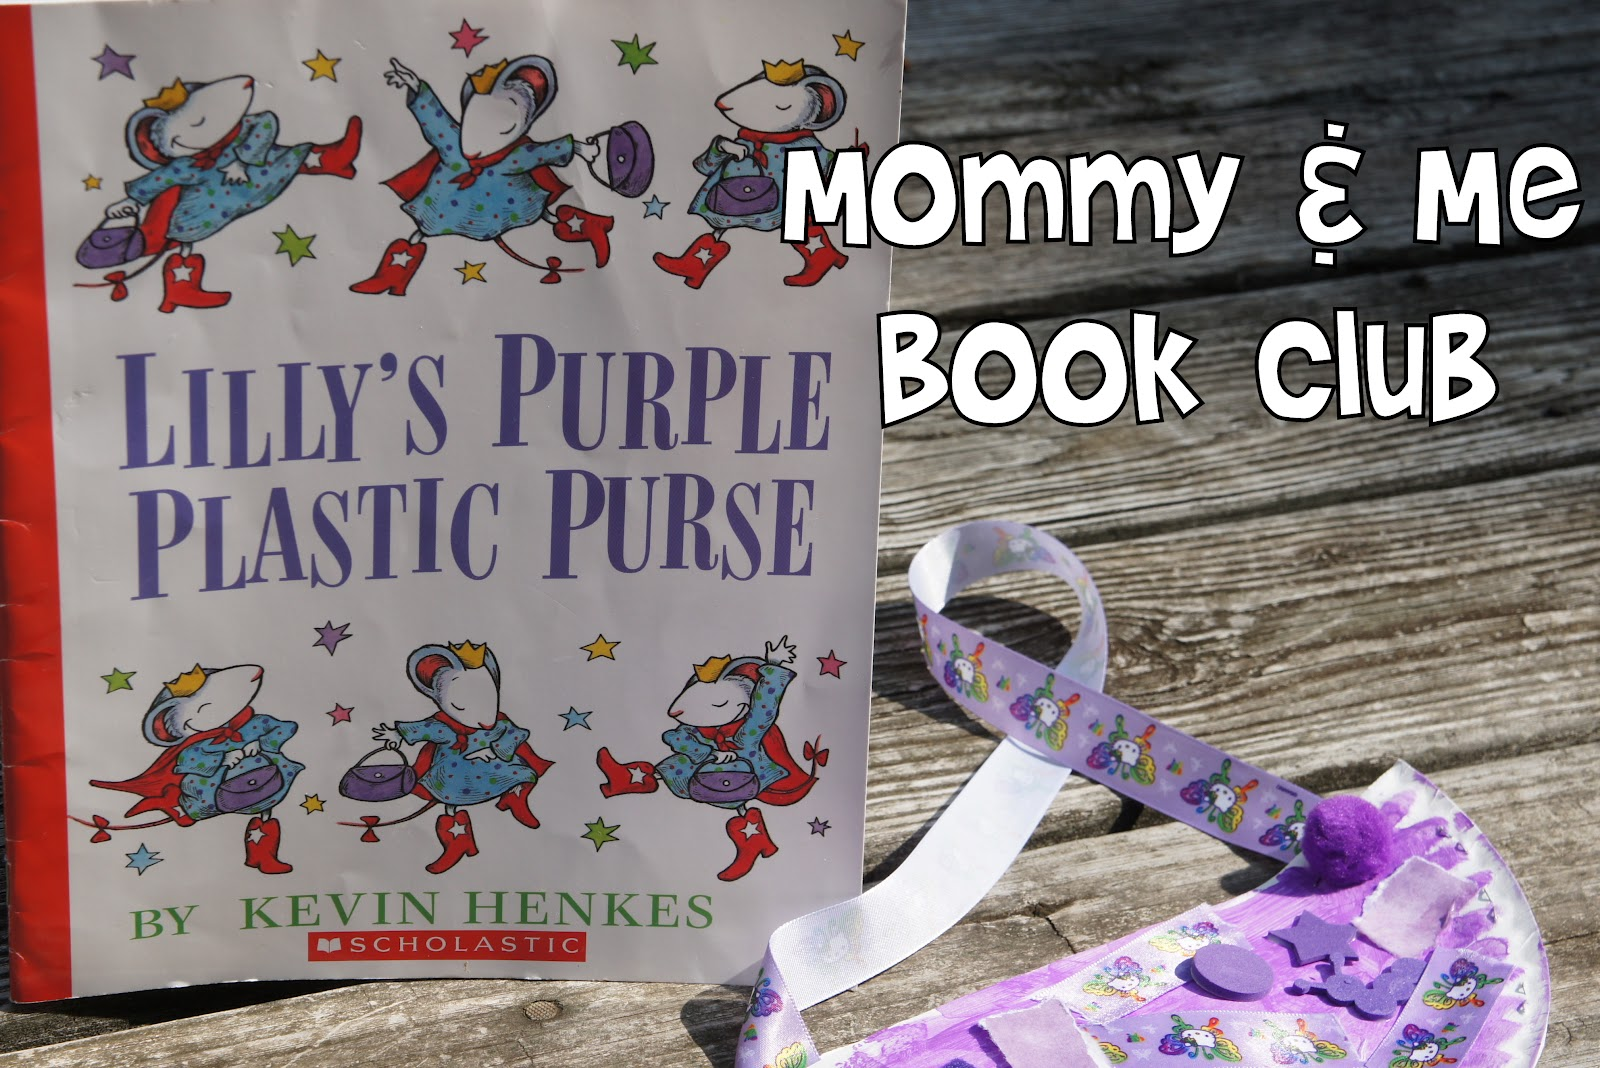 Mommy And Me Book Club Lilly S Purple Plastic Purse